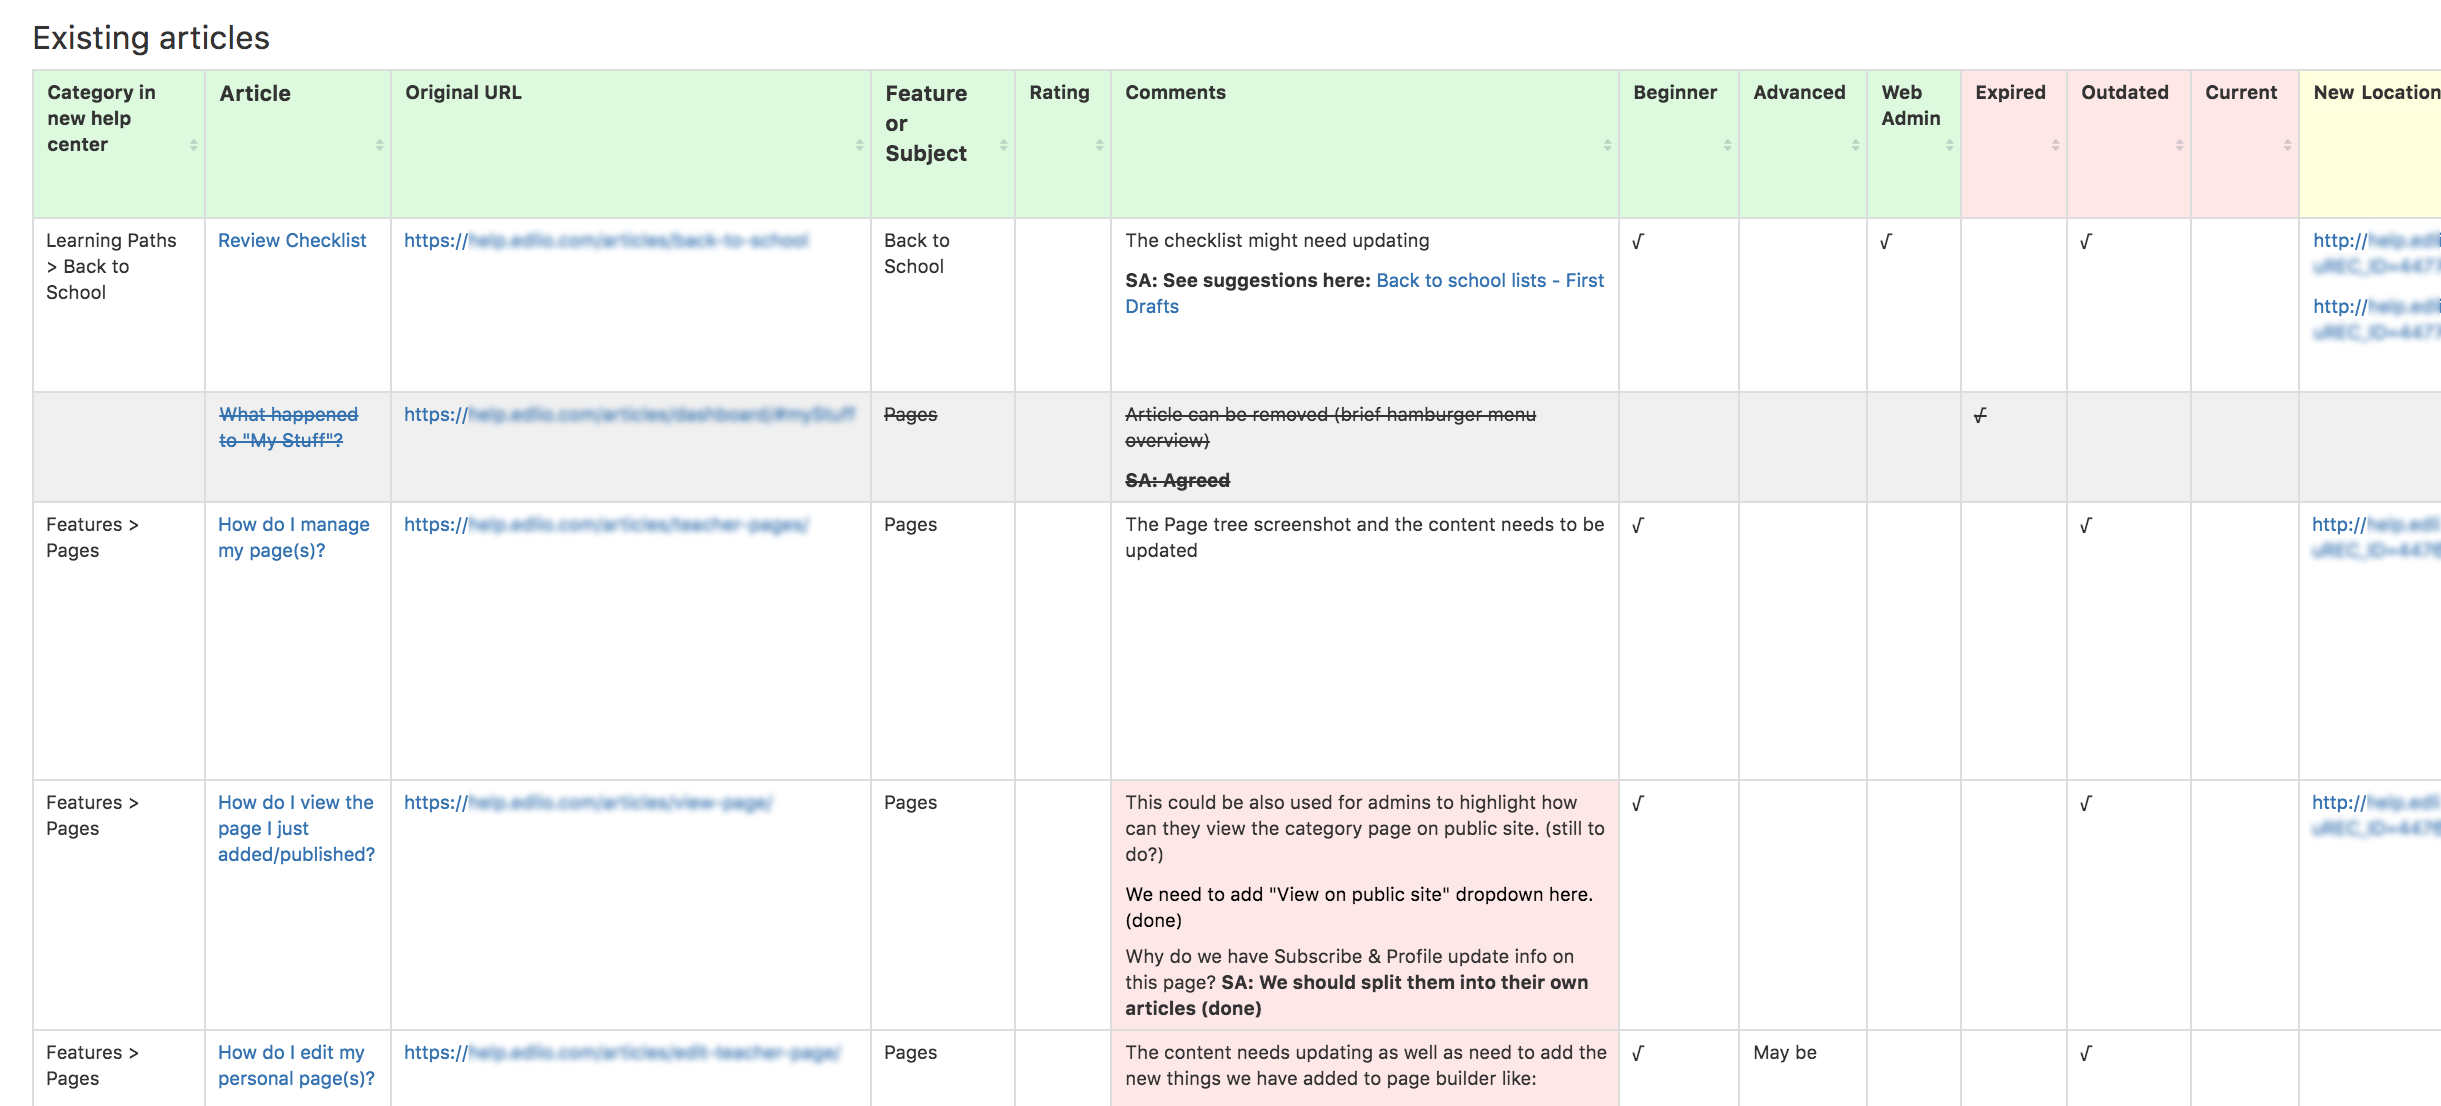 A content inventory captured our analysis of the existing articles including what changes were needed and what information was missing.